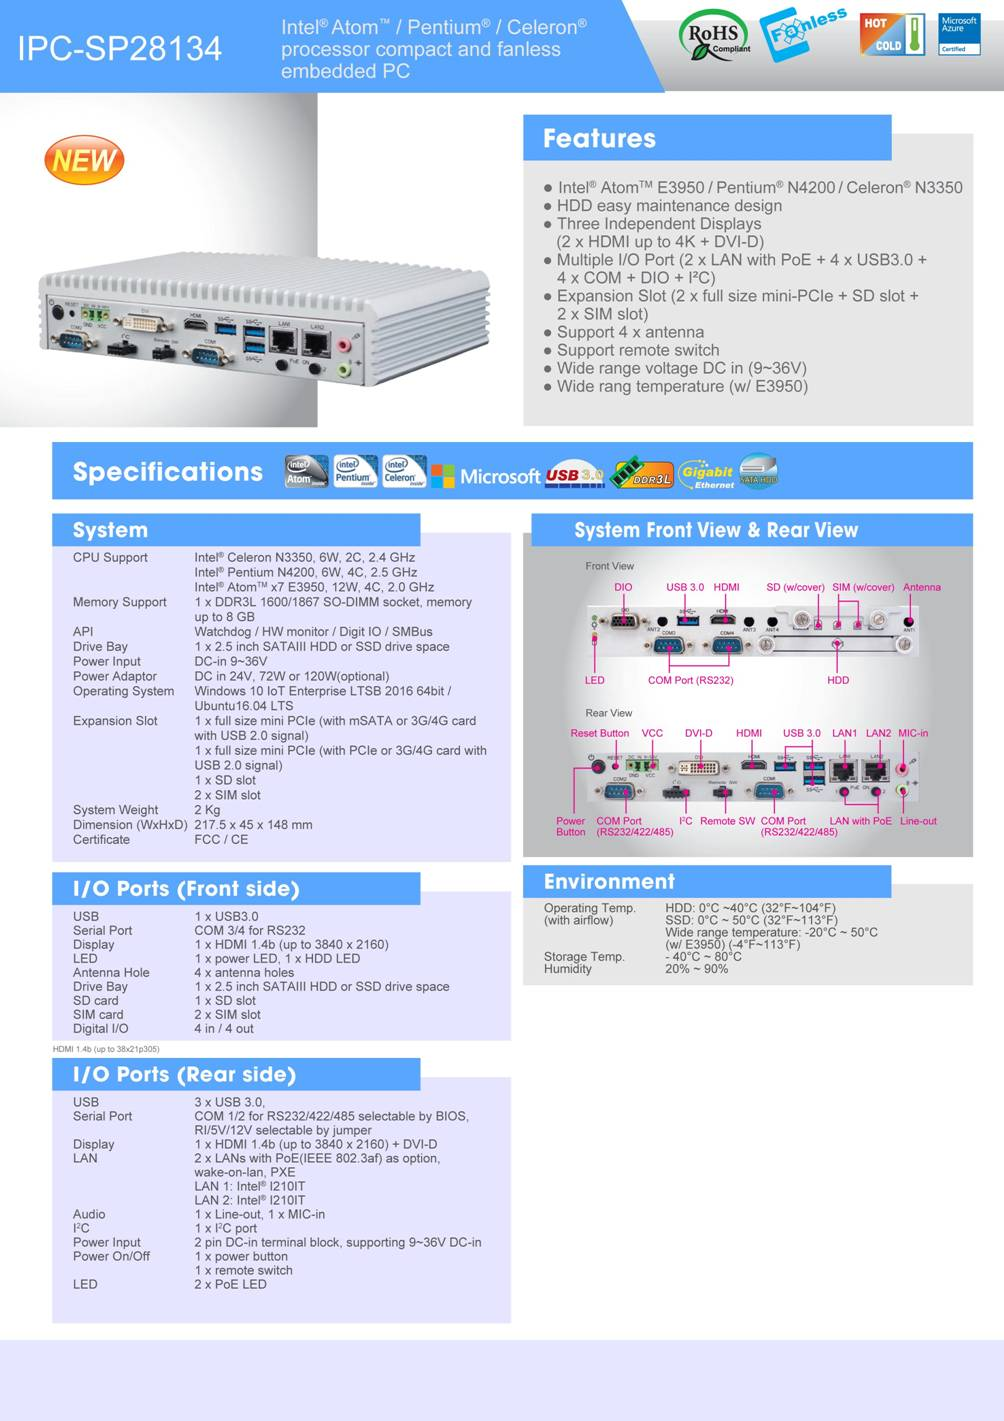 IPC-SP28134_Datasheet